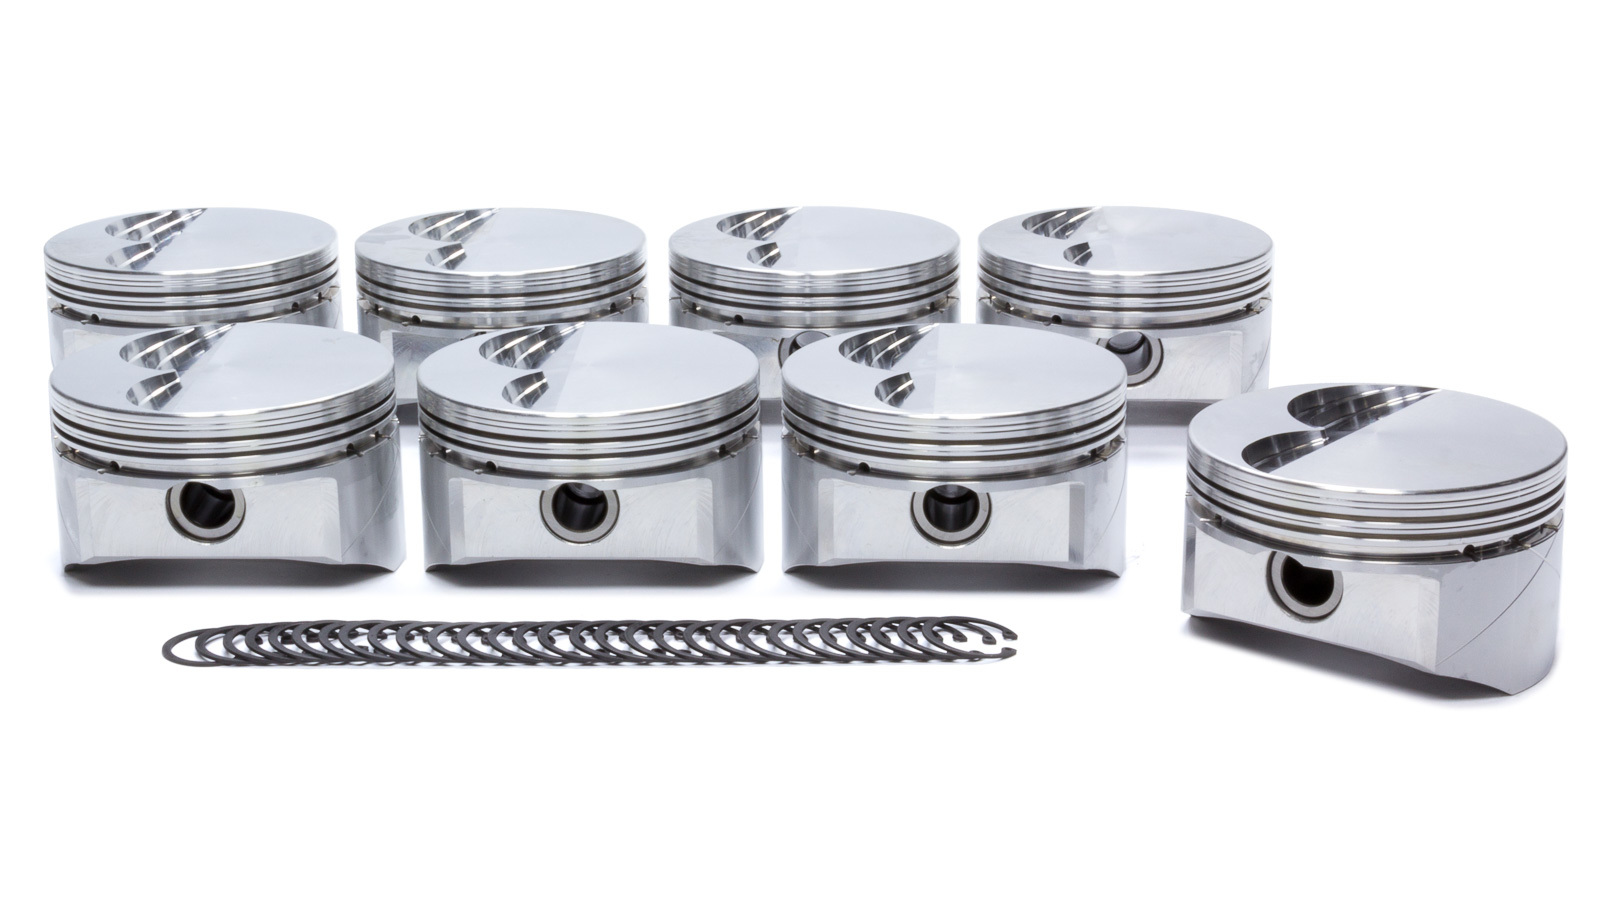 DSS Racing 4101X-4030 Piston, GSX Series, Forged, 4.030 in Bore, 1.5 x 1.5 x 4.0 mm Ring Grooves, Minus 3.0 cc, Small Block Ford, Set of 8